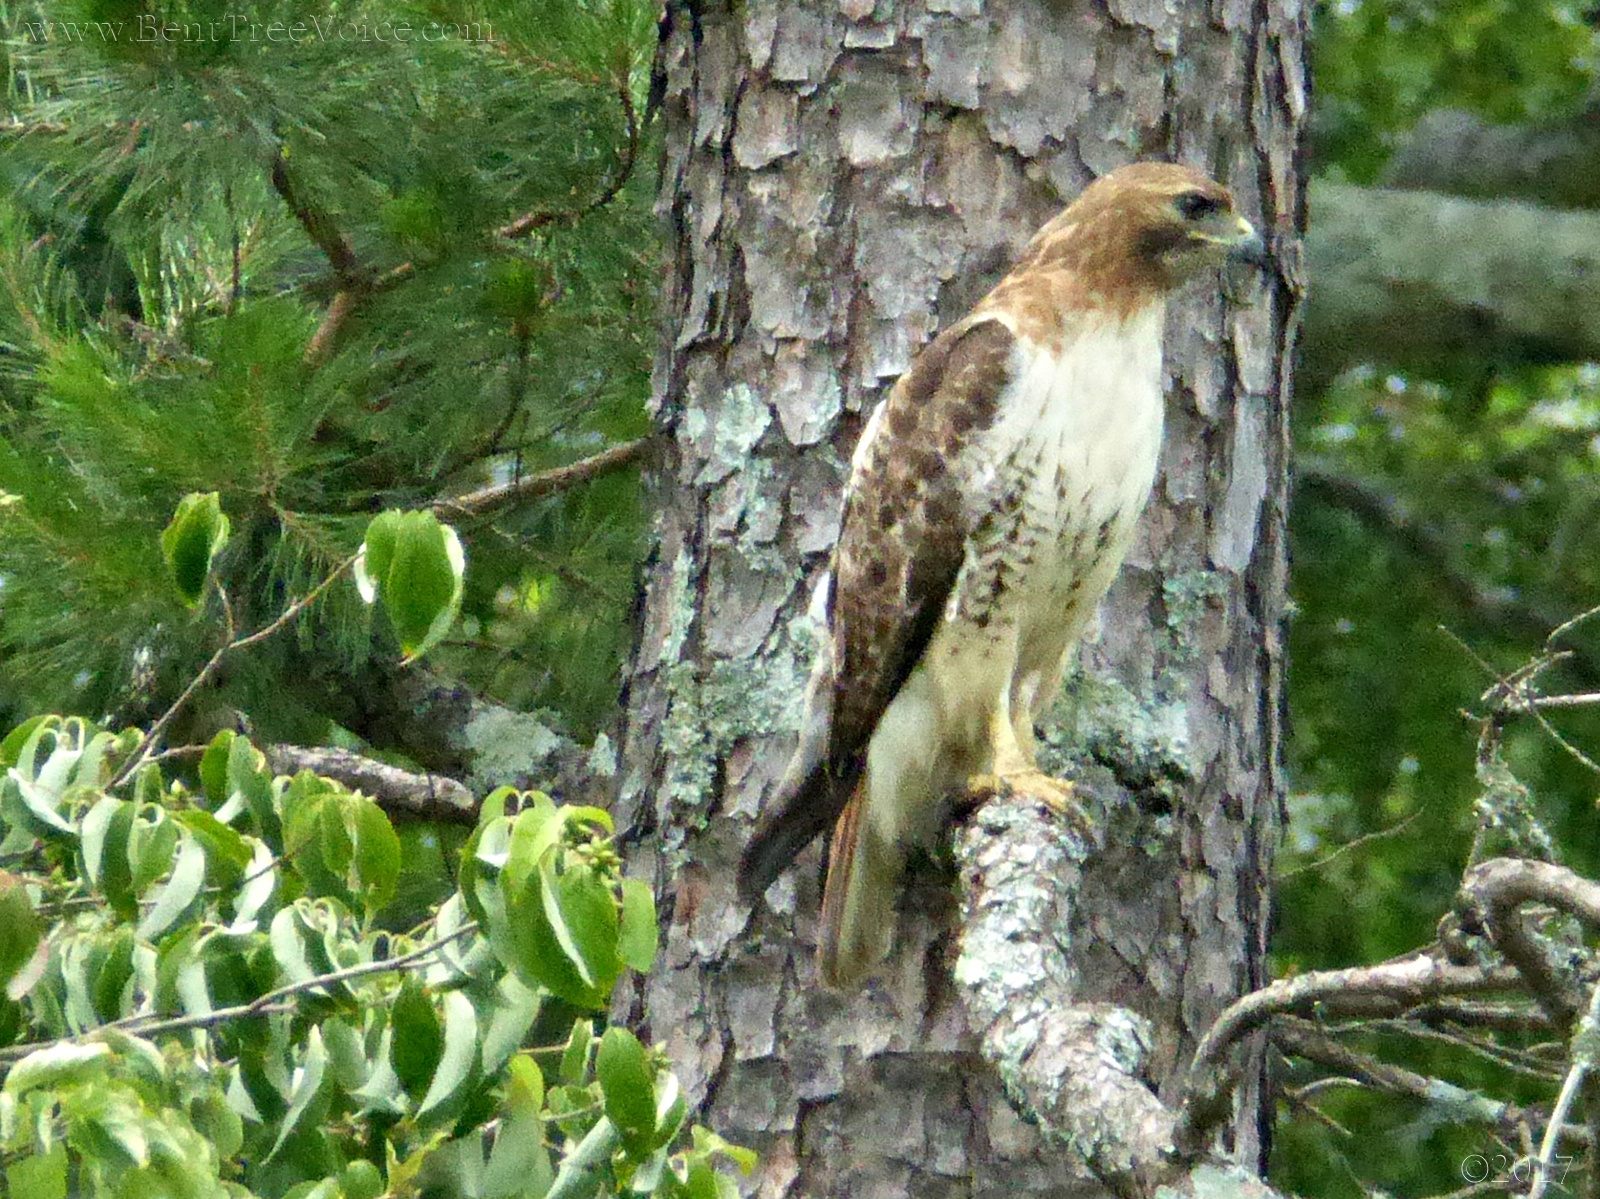 June 20, 2017 - Hawk that tried to steal a meal, but failed